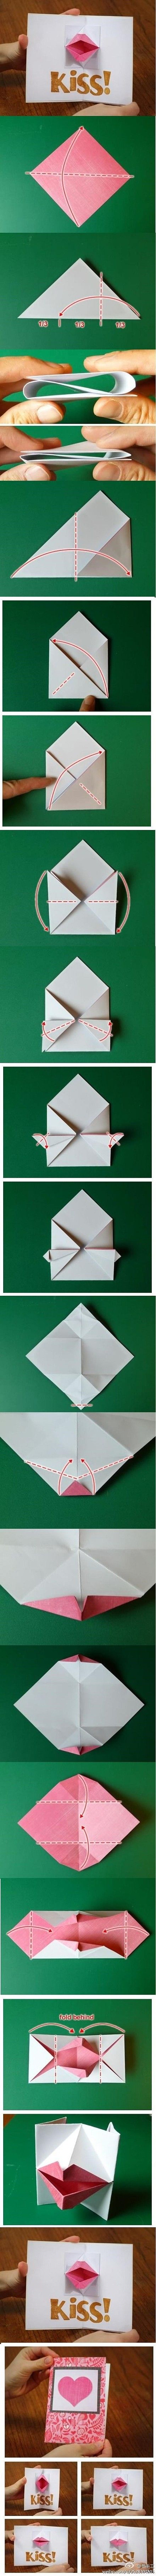 100 Best Origami 101 Images On Pinterest Bricolage Diy Origami